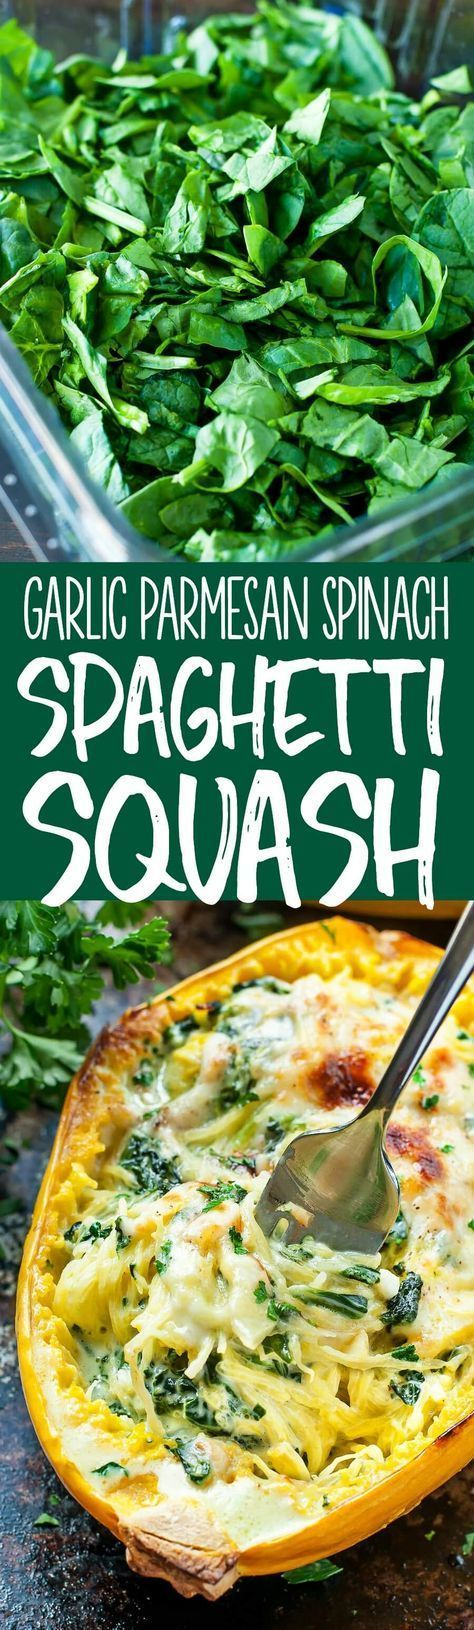 Aiming to eat more veggies? This Cheesy Garlic Parmesan Spinach Spaghetti Squash recipe packs an entire package of spinach swirled with an easy cheesy cream sauce. (Squash Recipes Pasta)